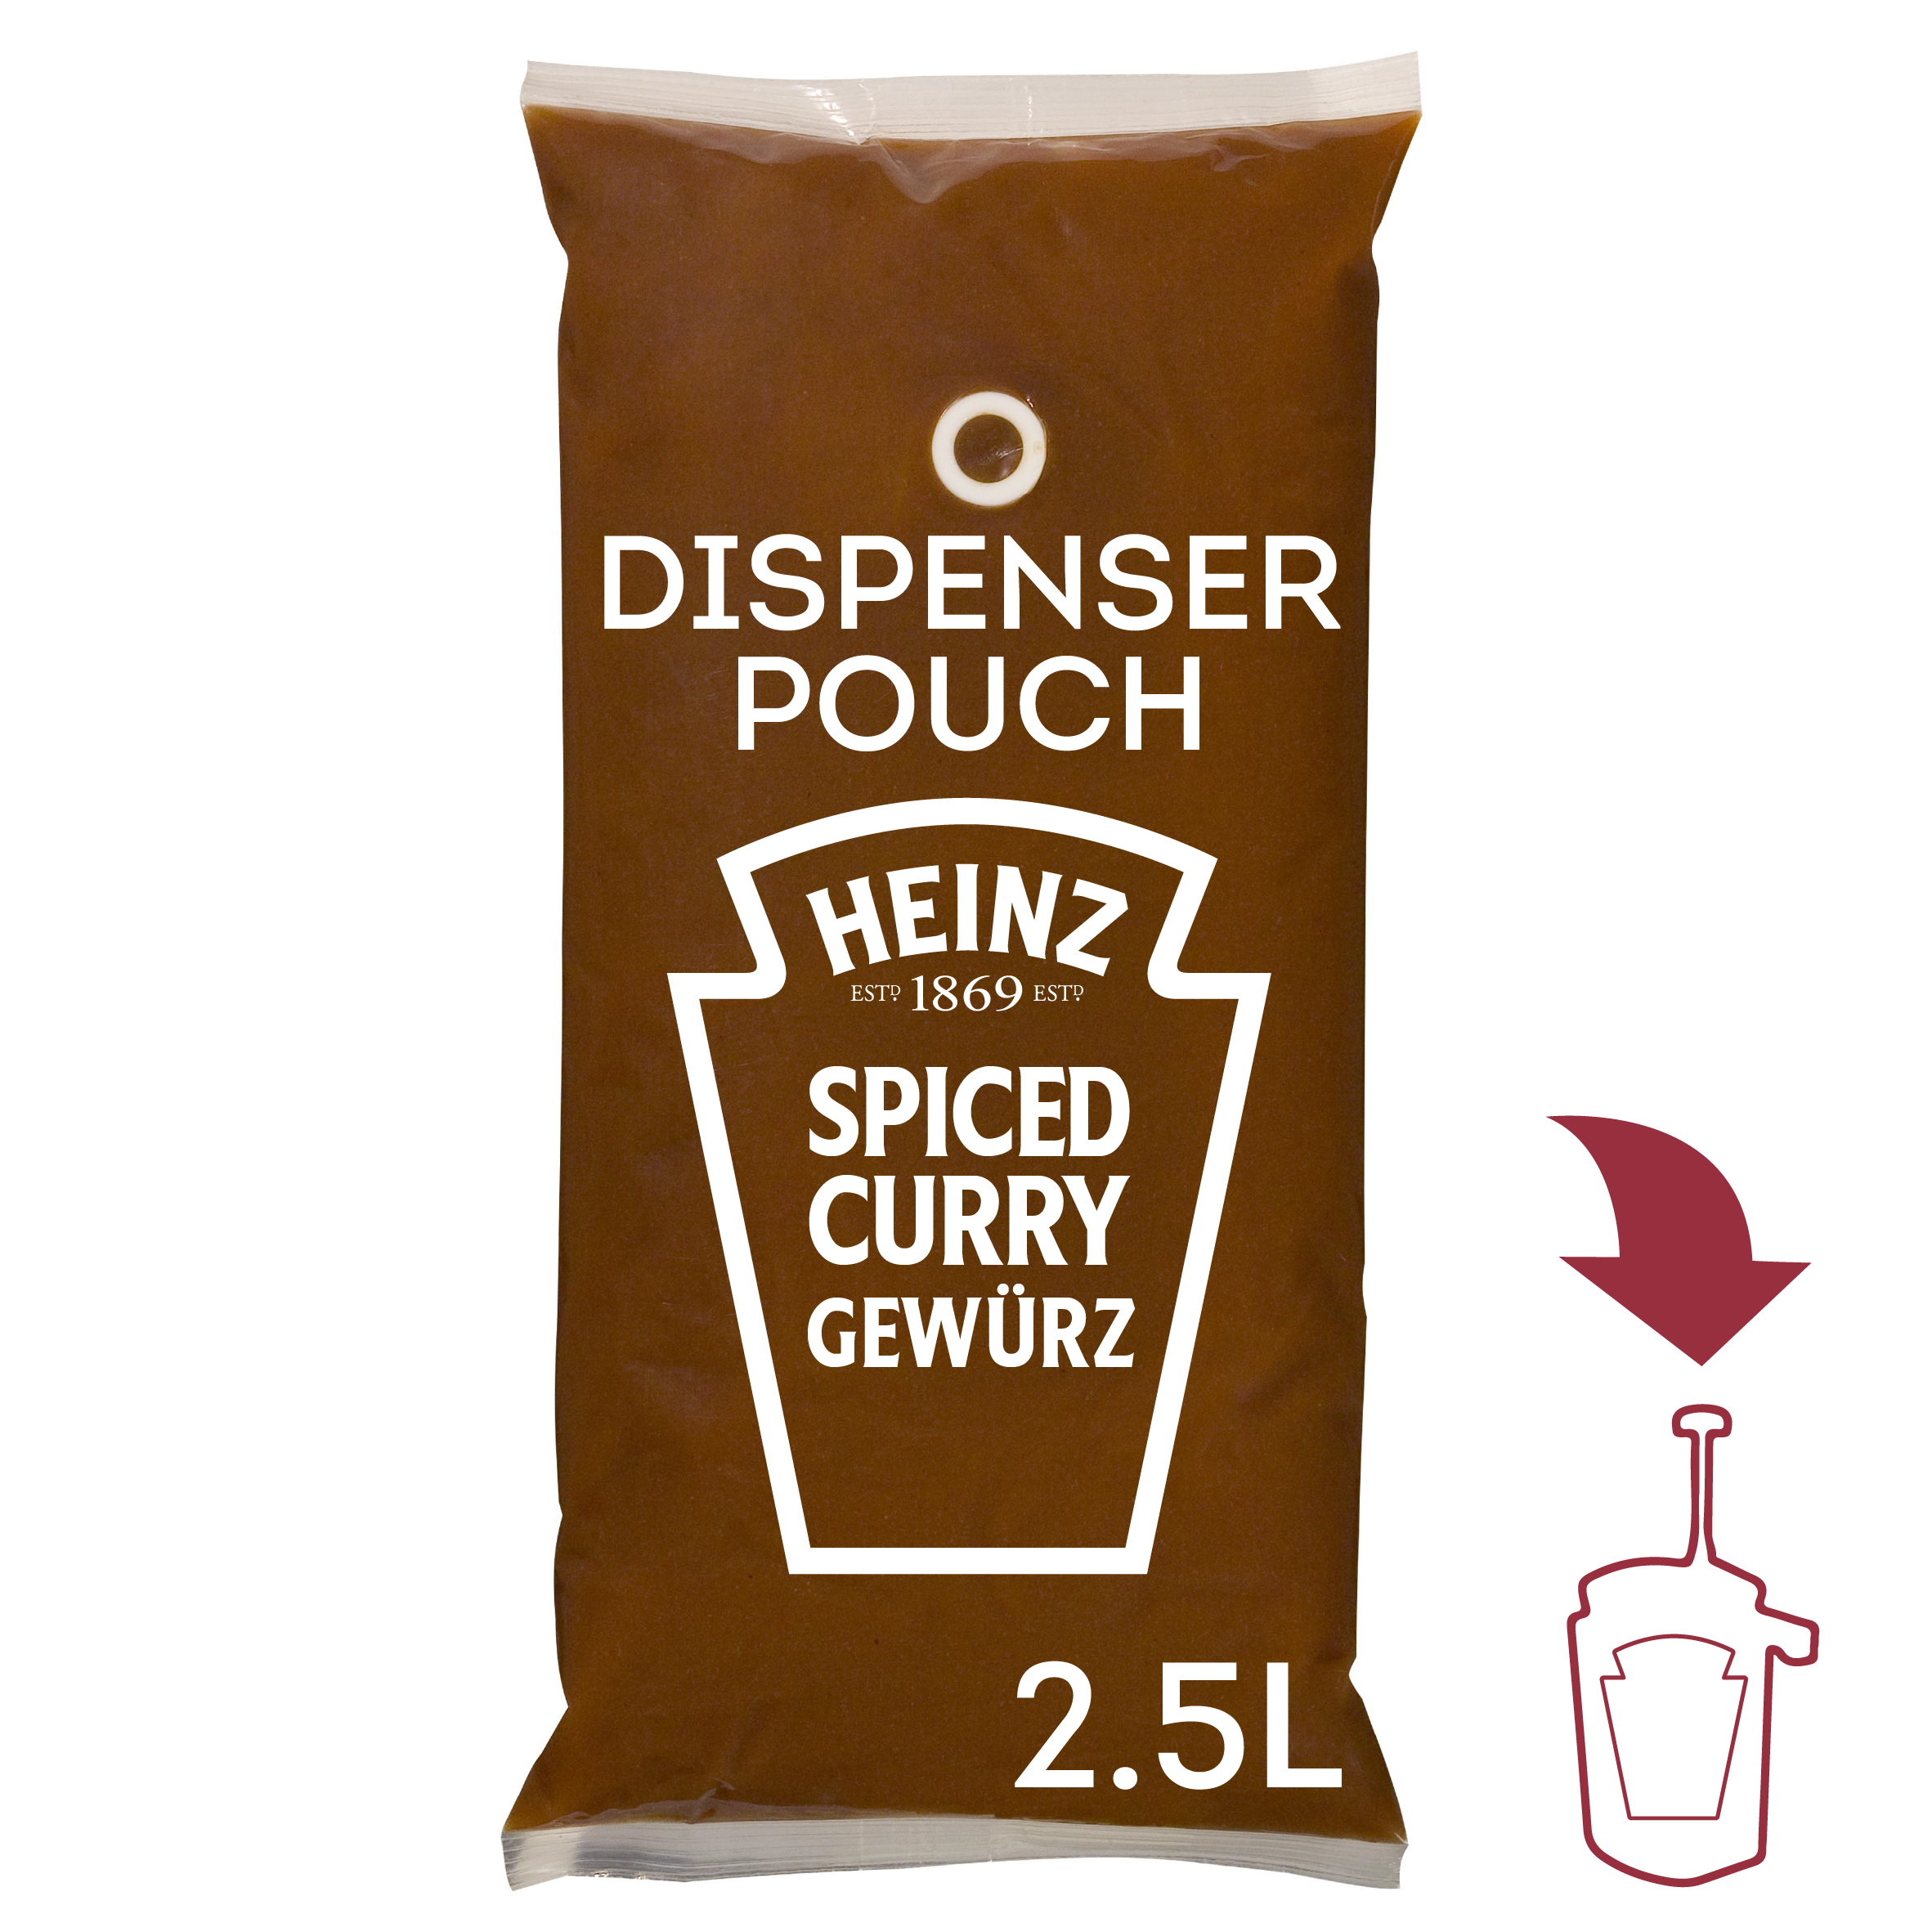 Heinz SOM Pittige Curry Gewurz 2.5L image